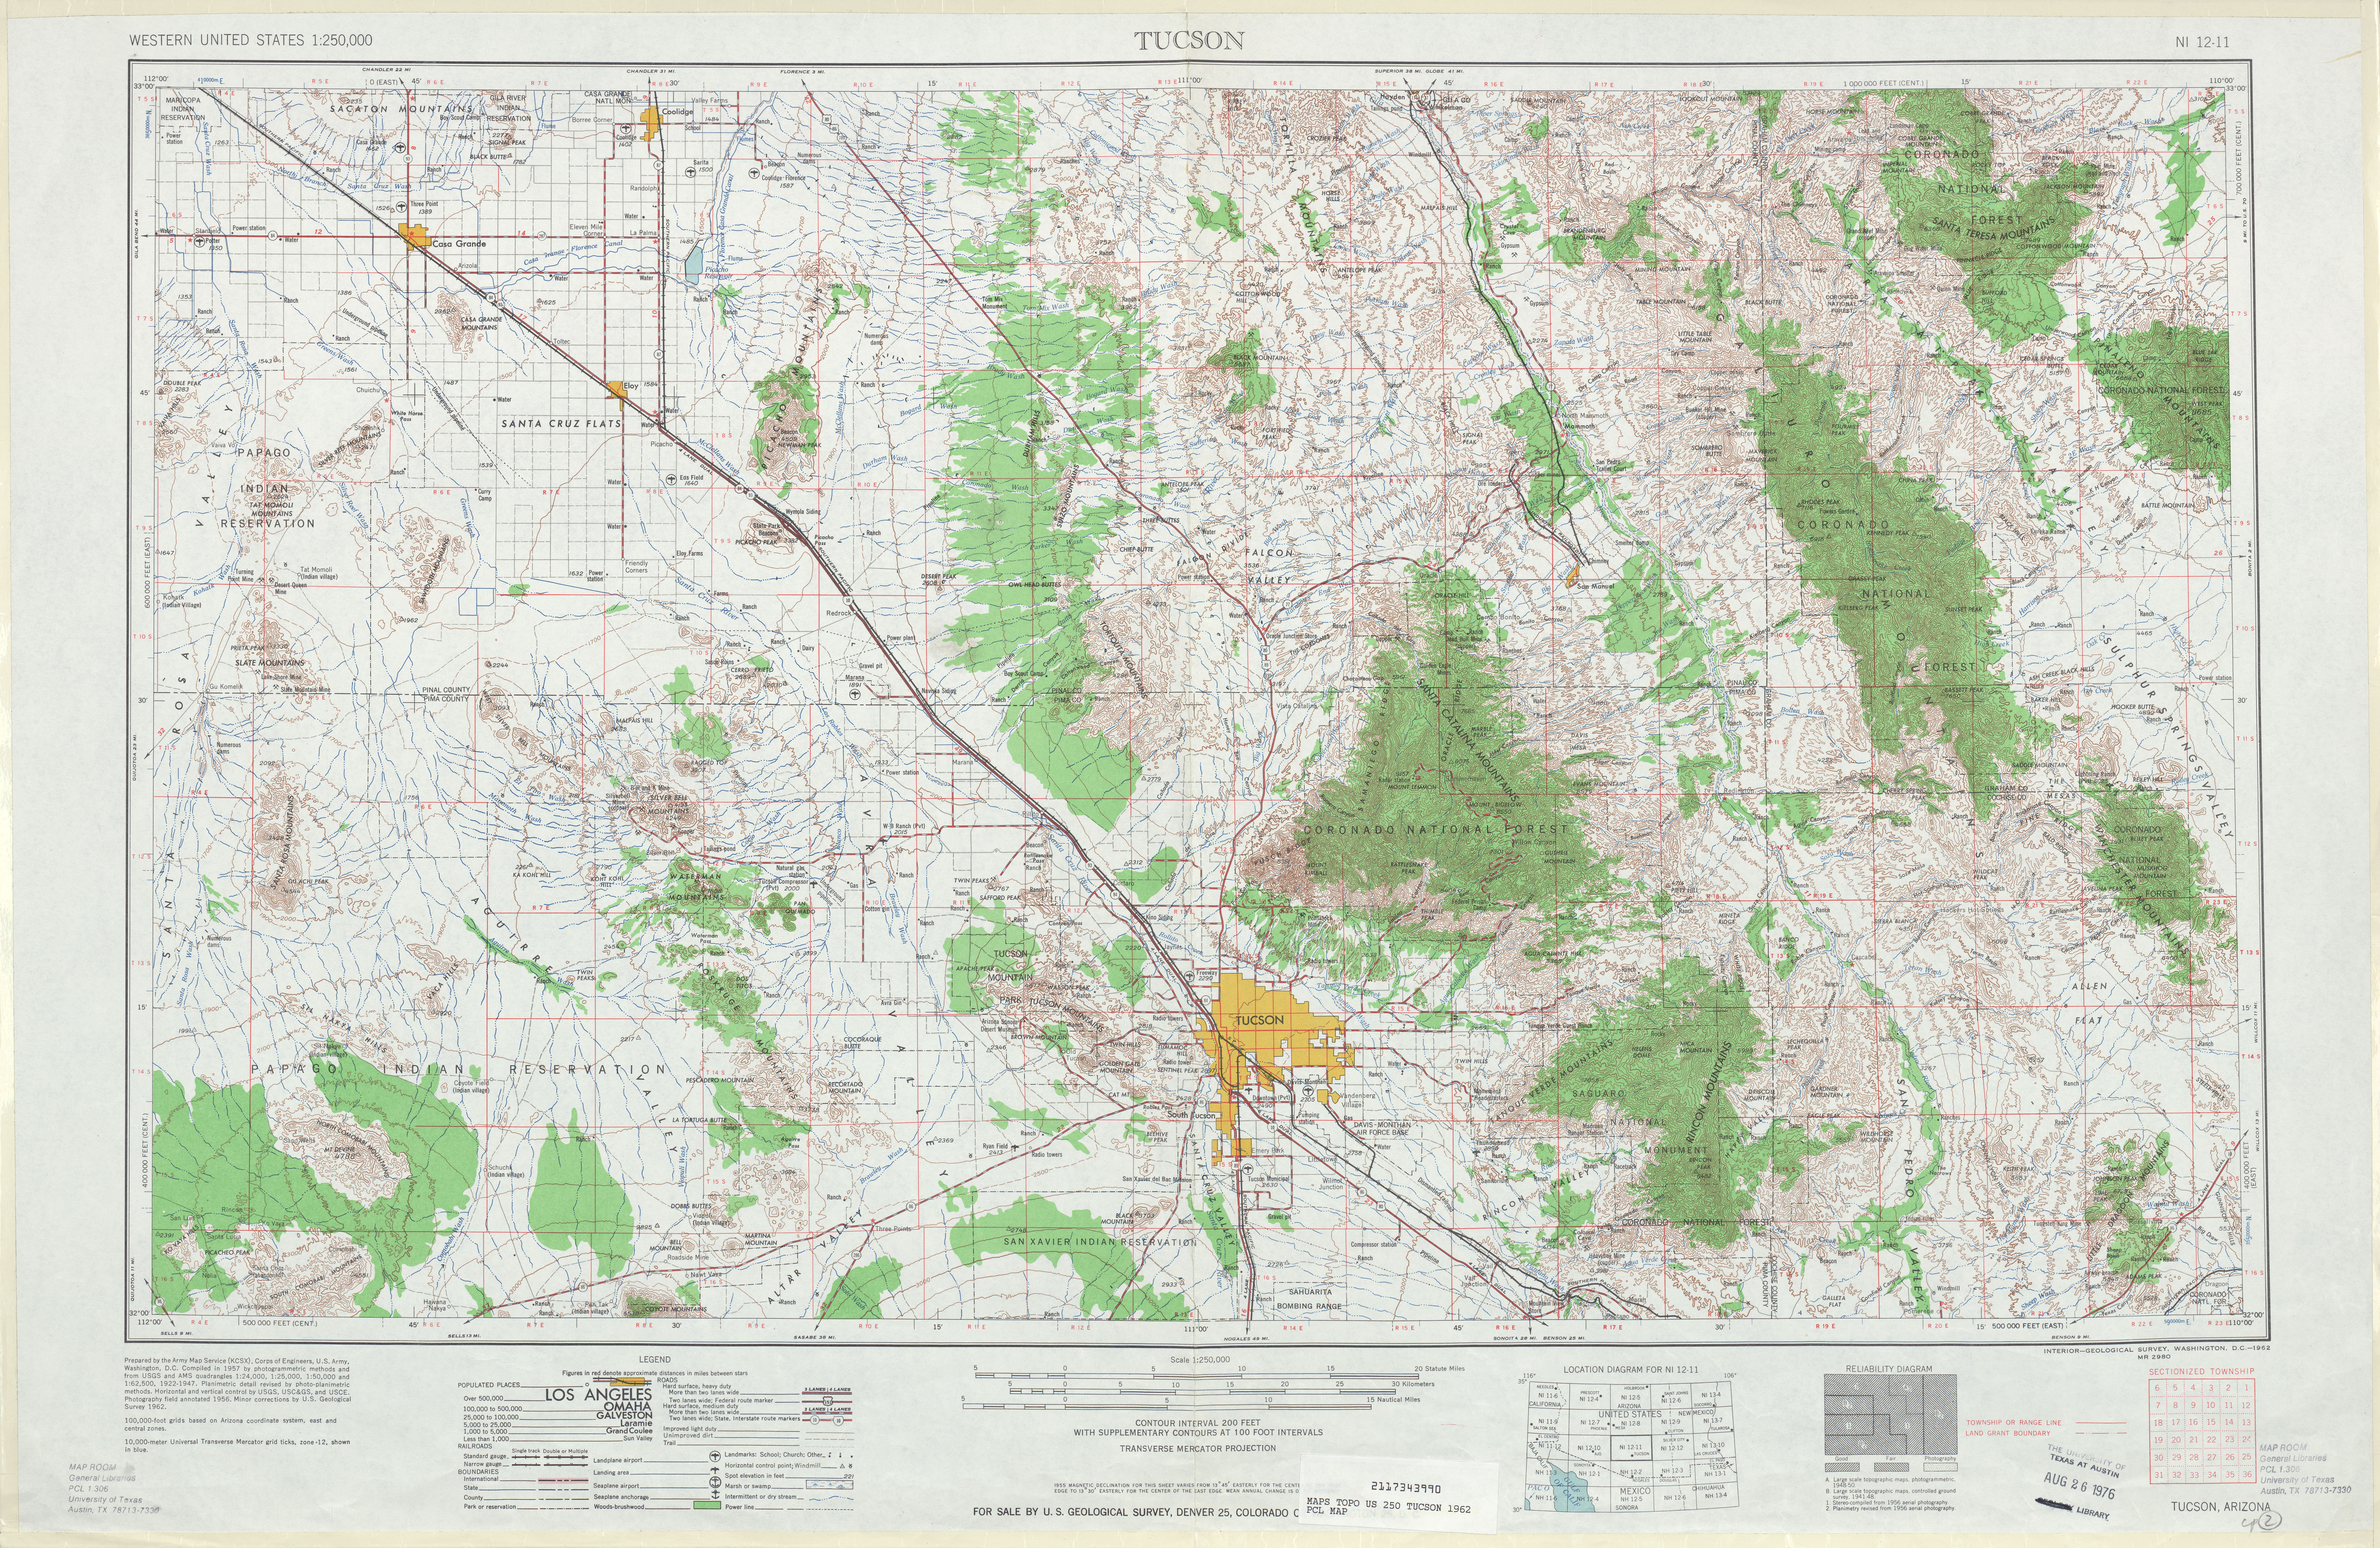 Tucson Topographic Map Sheet, United States 1962